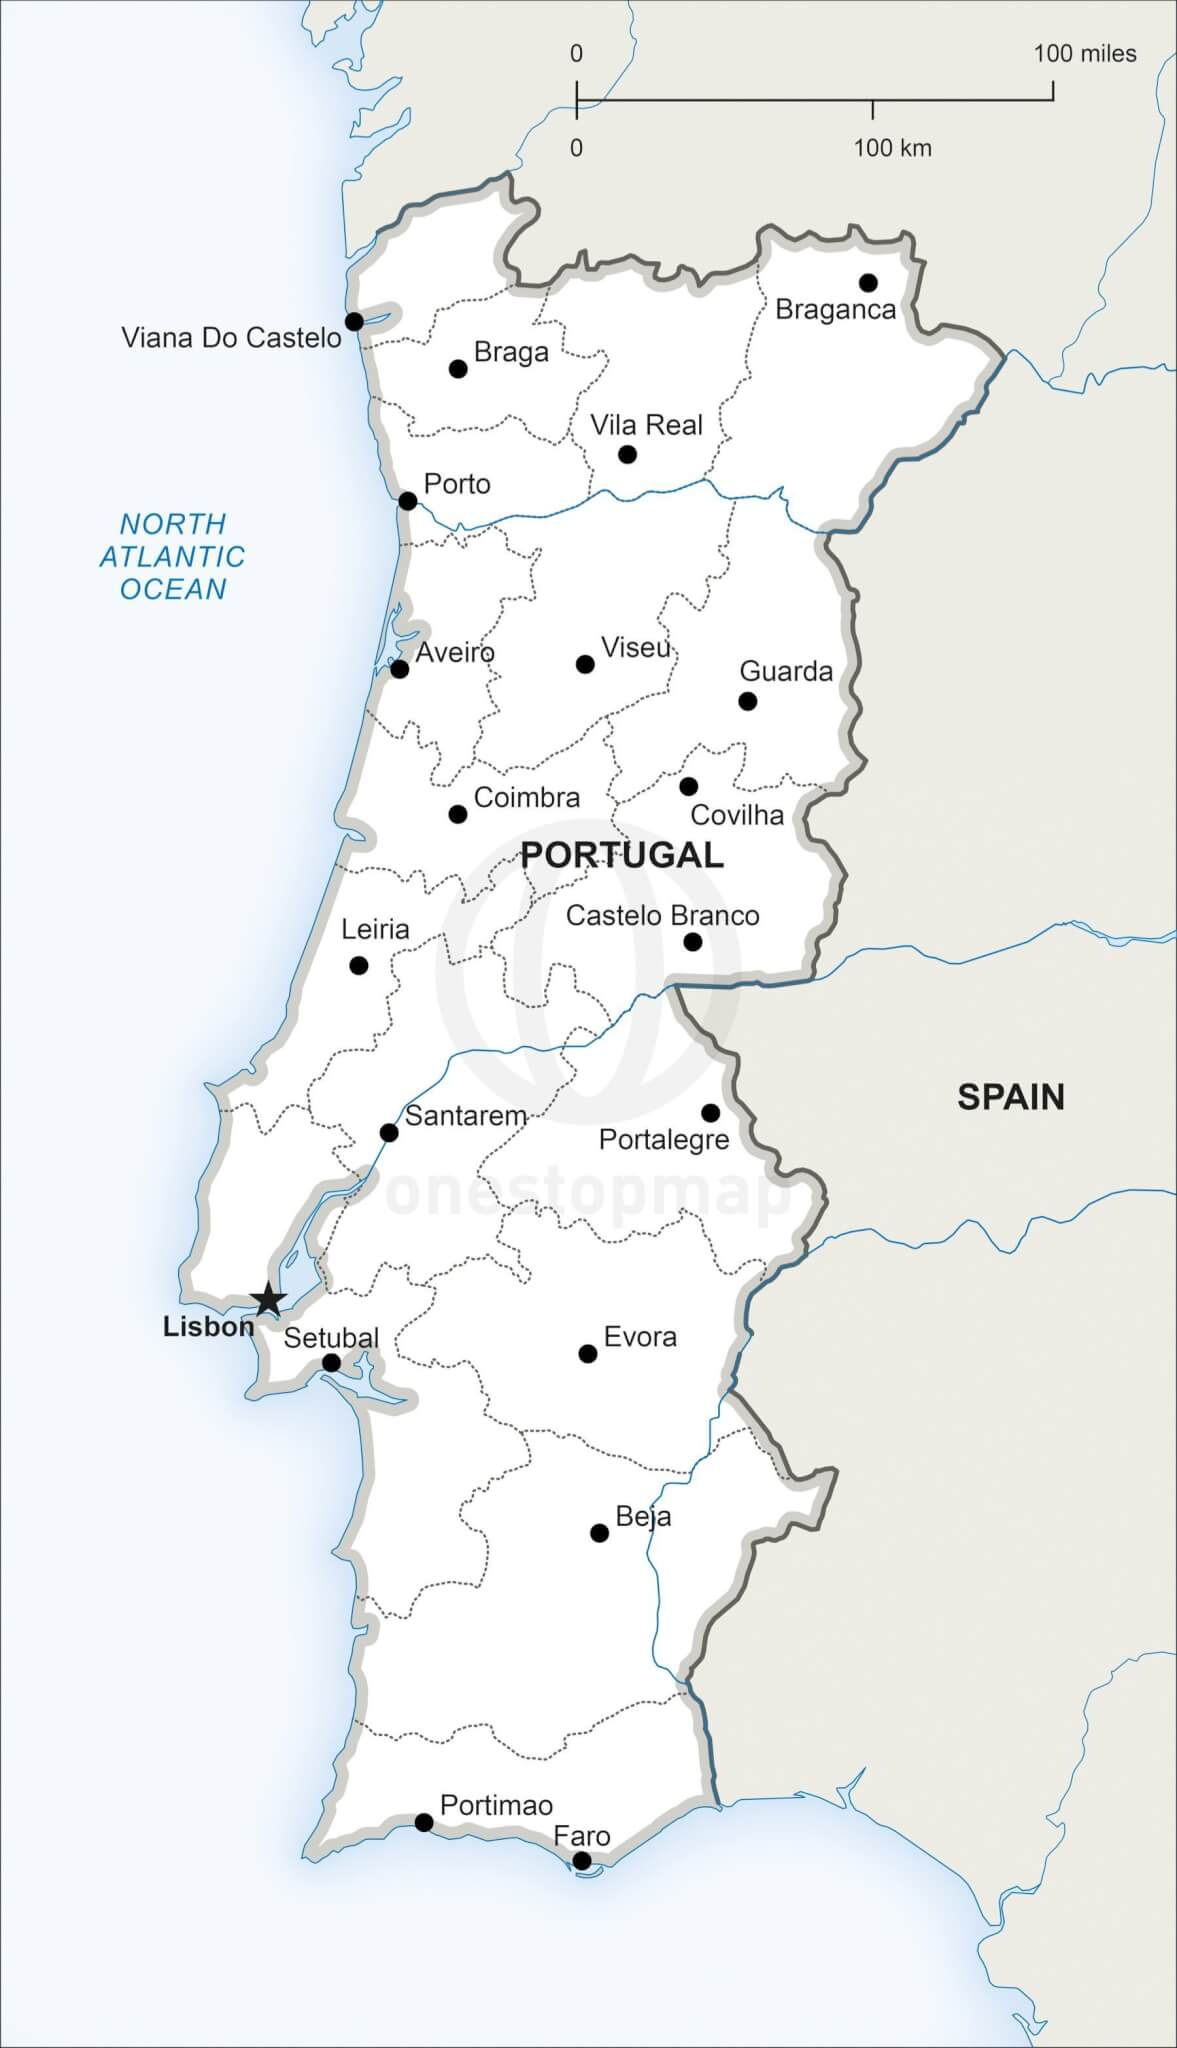 Free Vector Map Of Portugal Outline One Stop Map - Portugal map